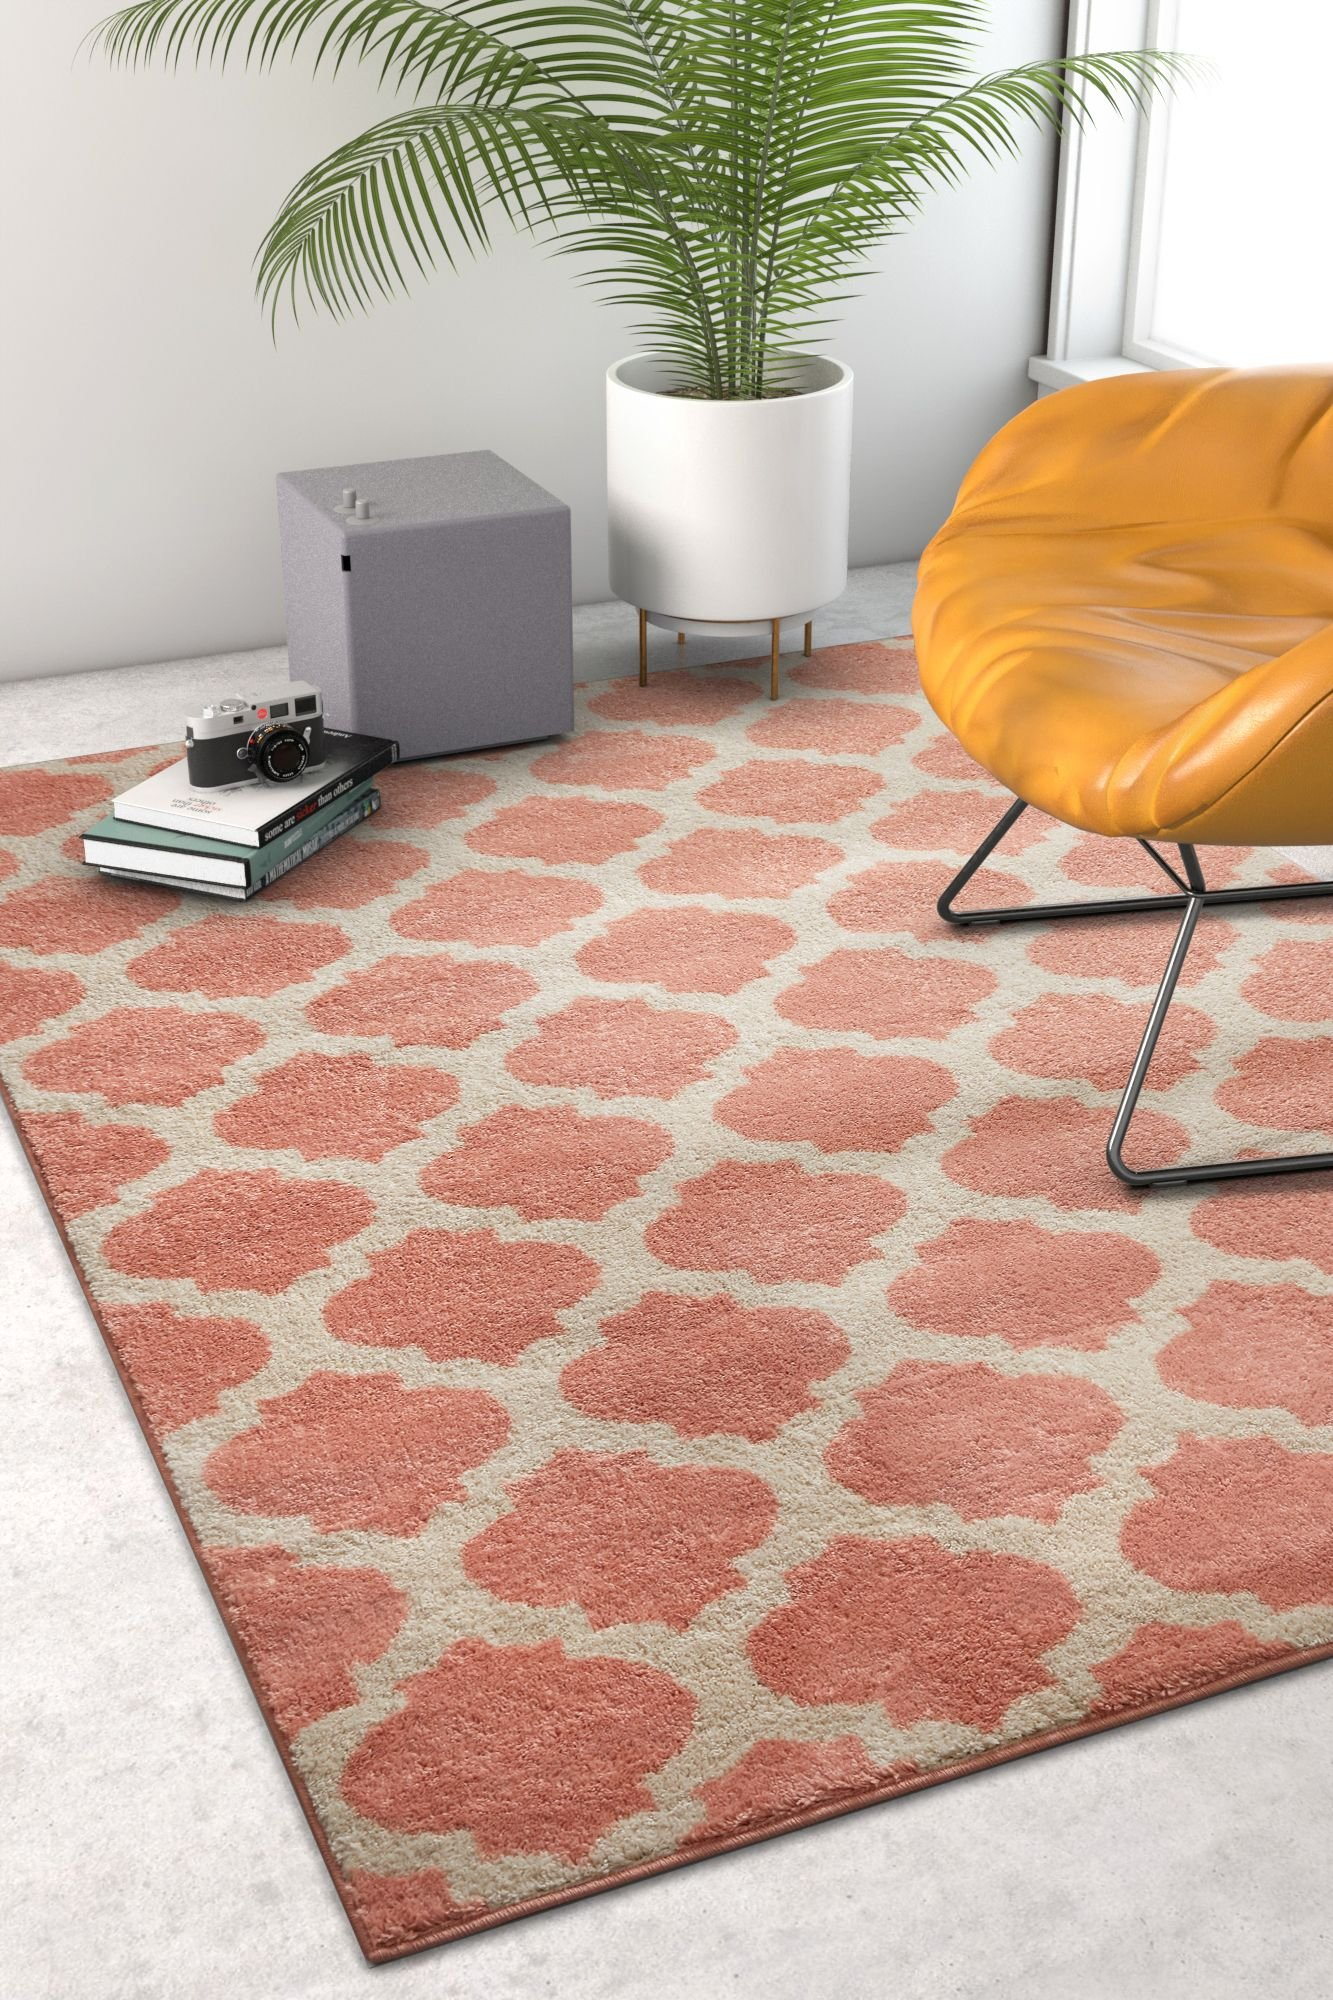 Tinsley Trellis Pink & Ivory Moroccan Lattice Modern Geometric Pattern 8x11 (7'10'' x 9'10'') Area Rug Soft Shed Free Easy to Clean Stain Resistant